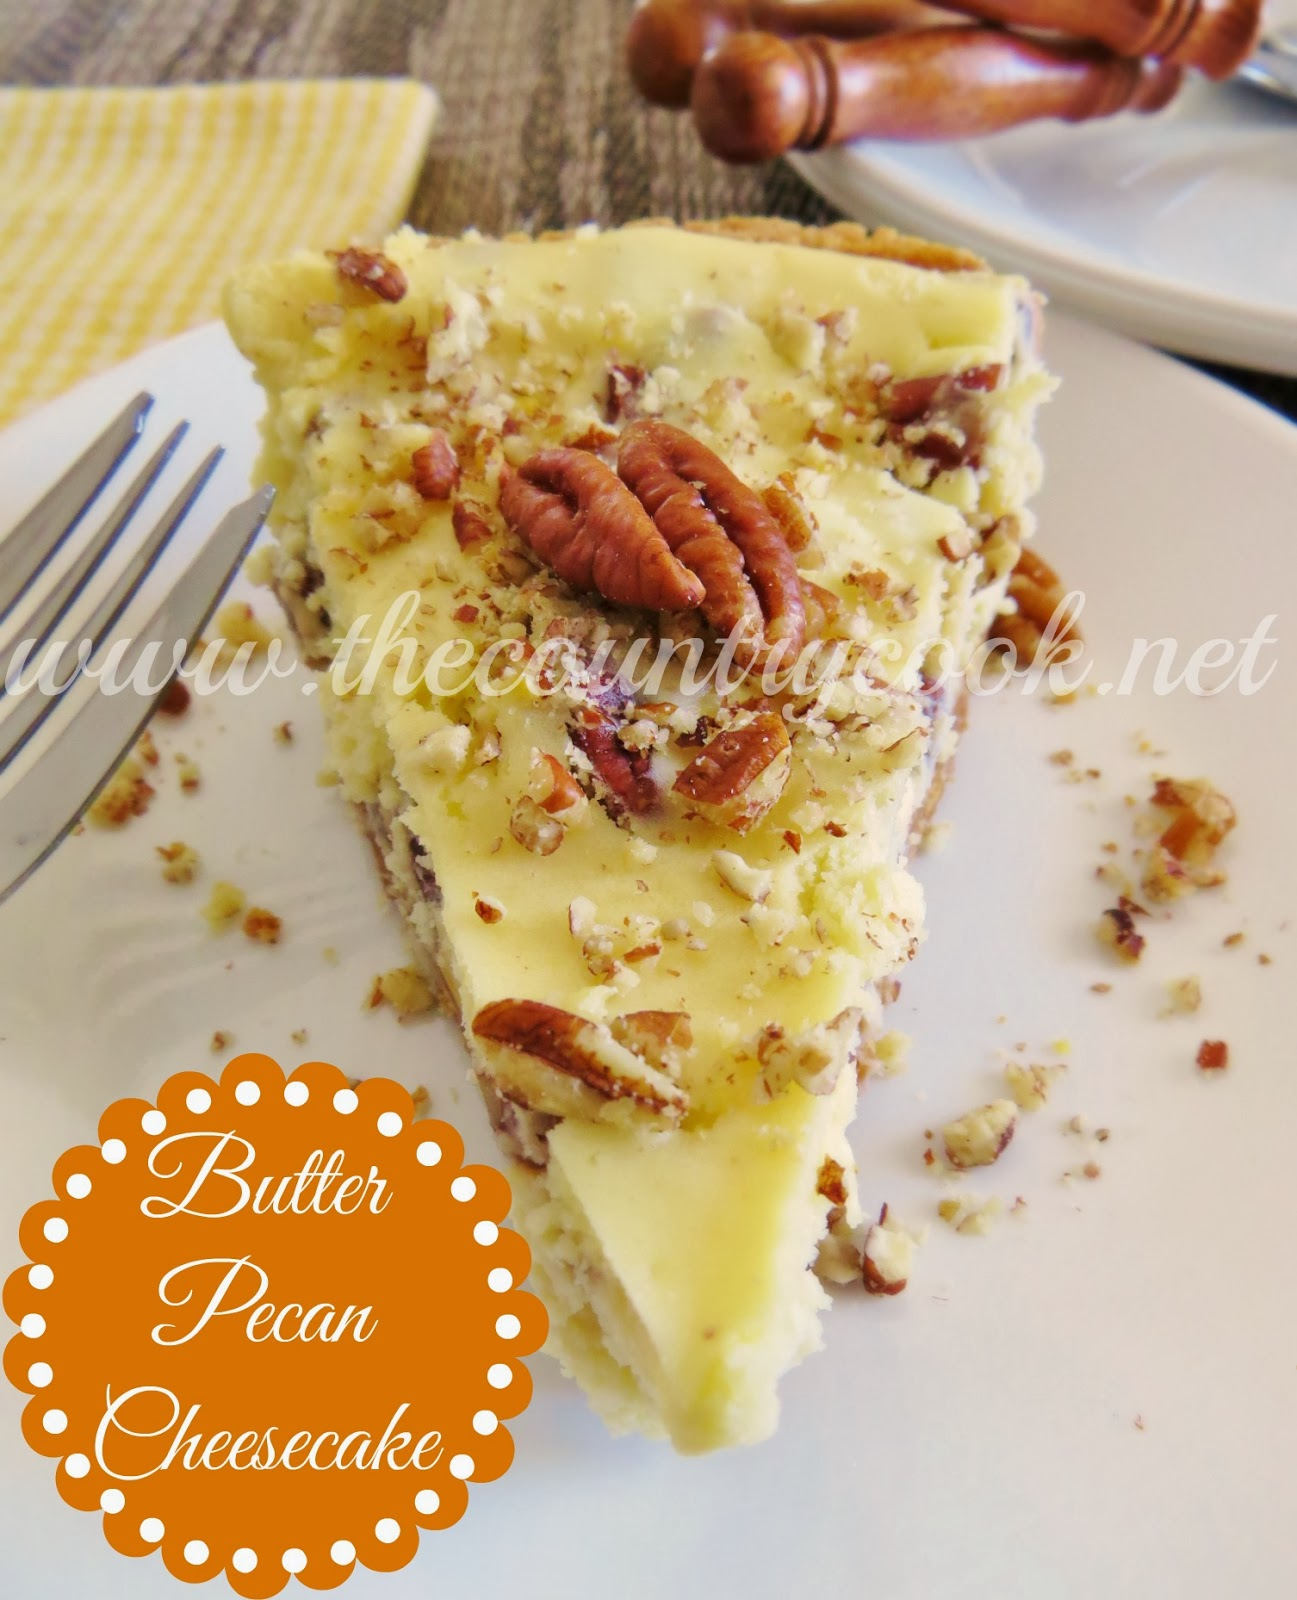 Butter Pecan Cheesecake - The Country Cook